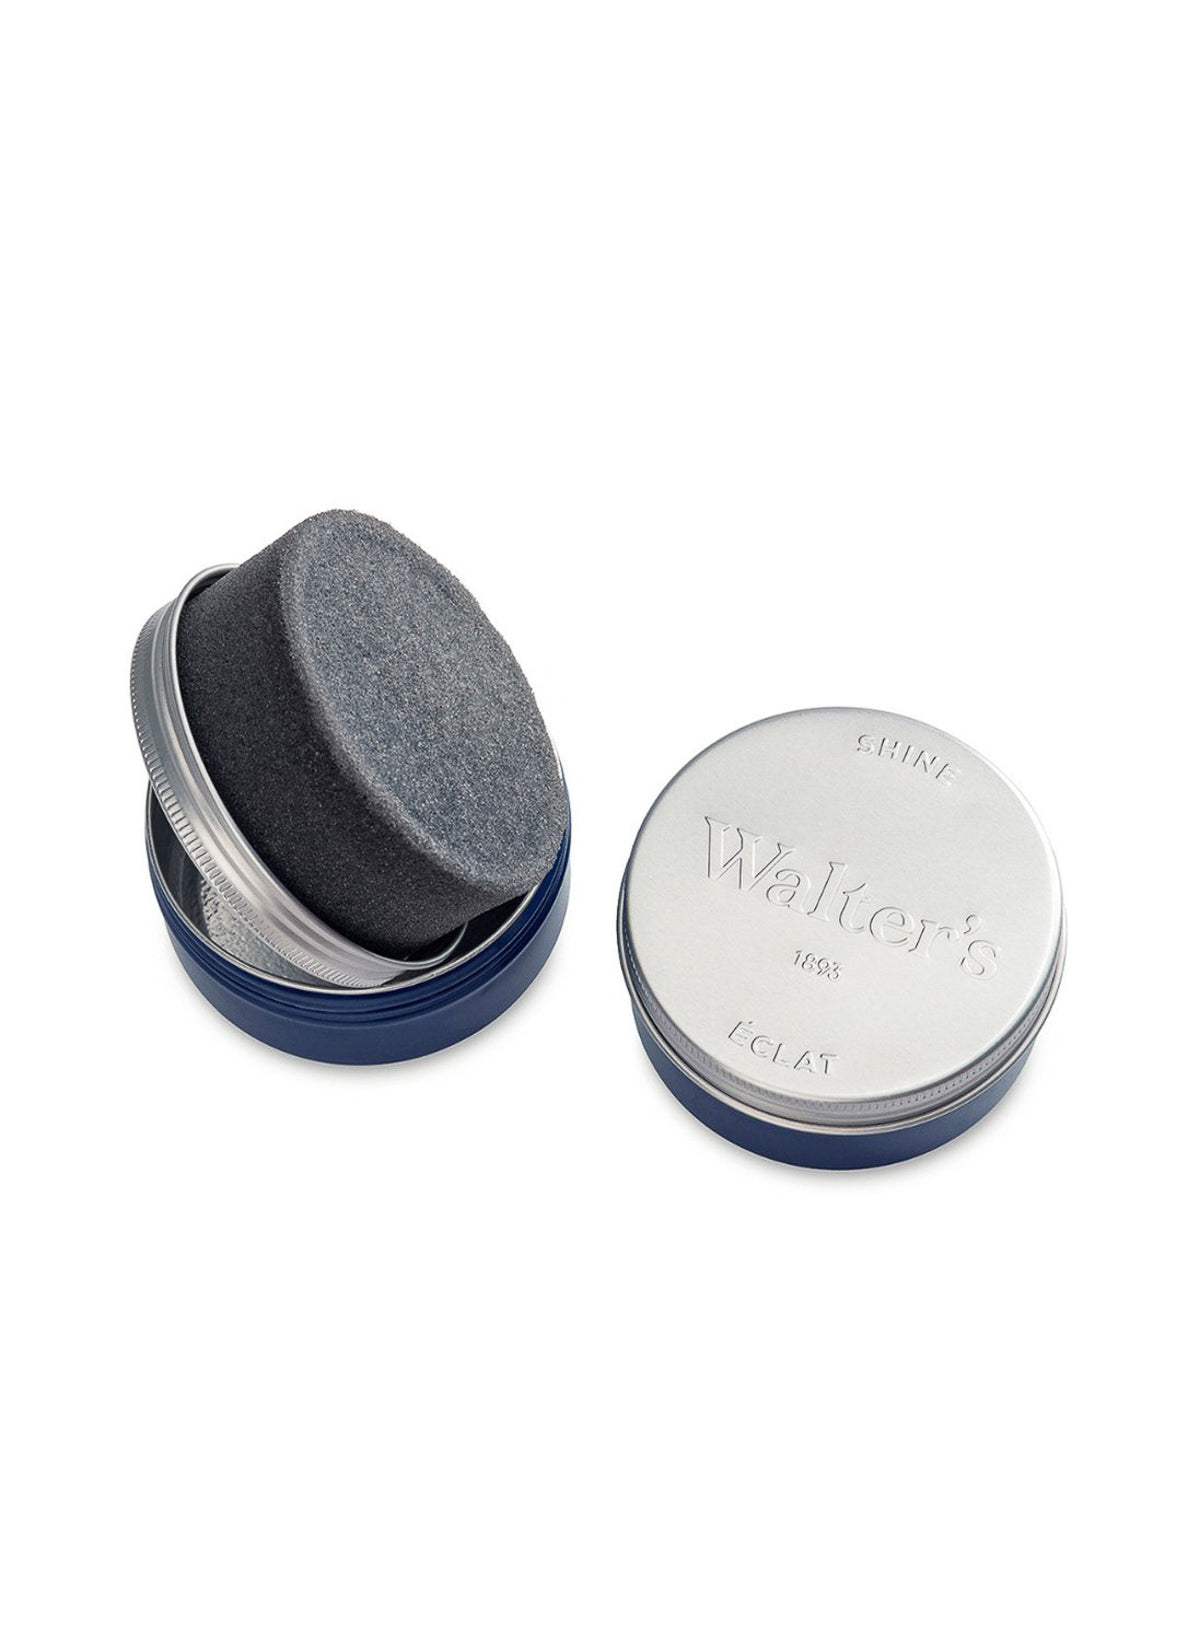 shoe shine sponge - walter's -multicolour